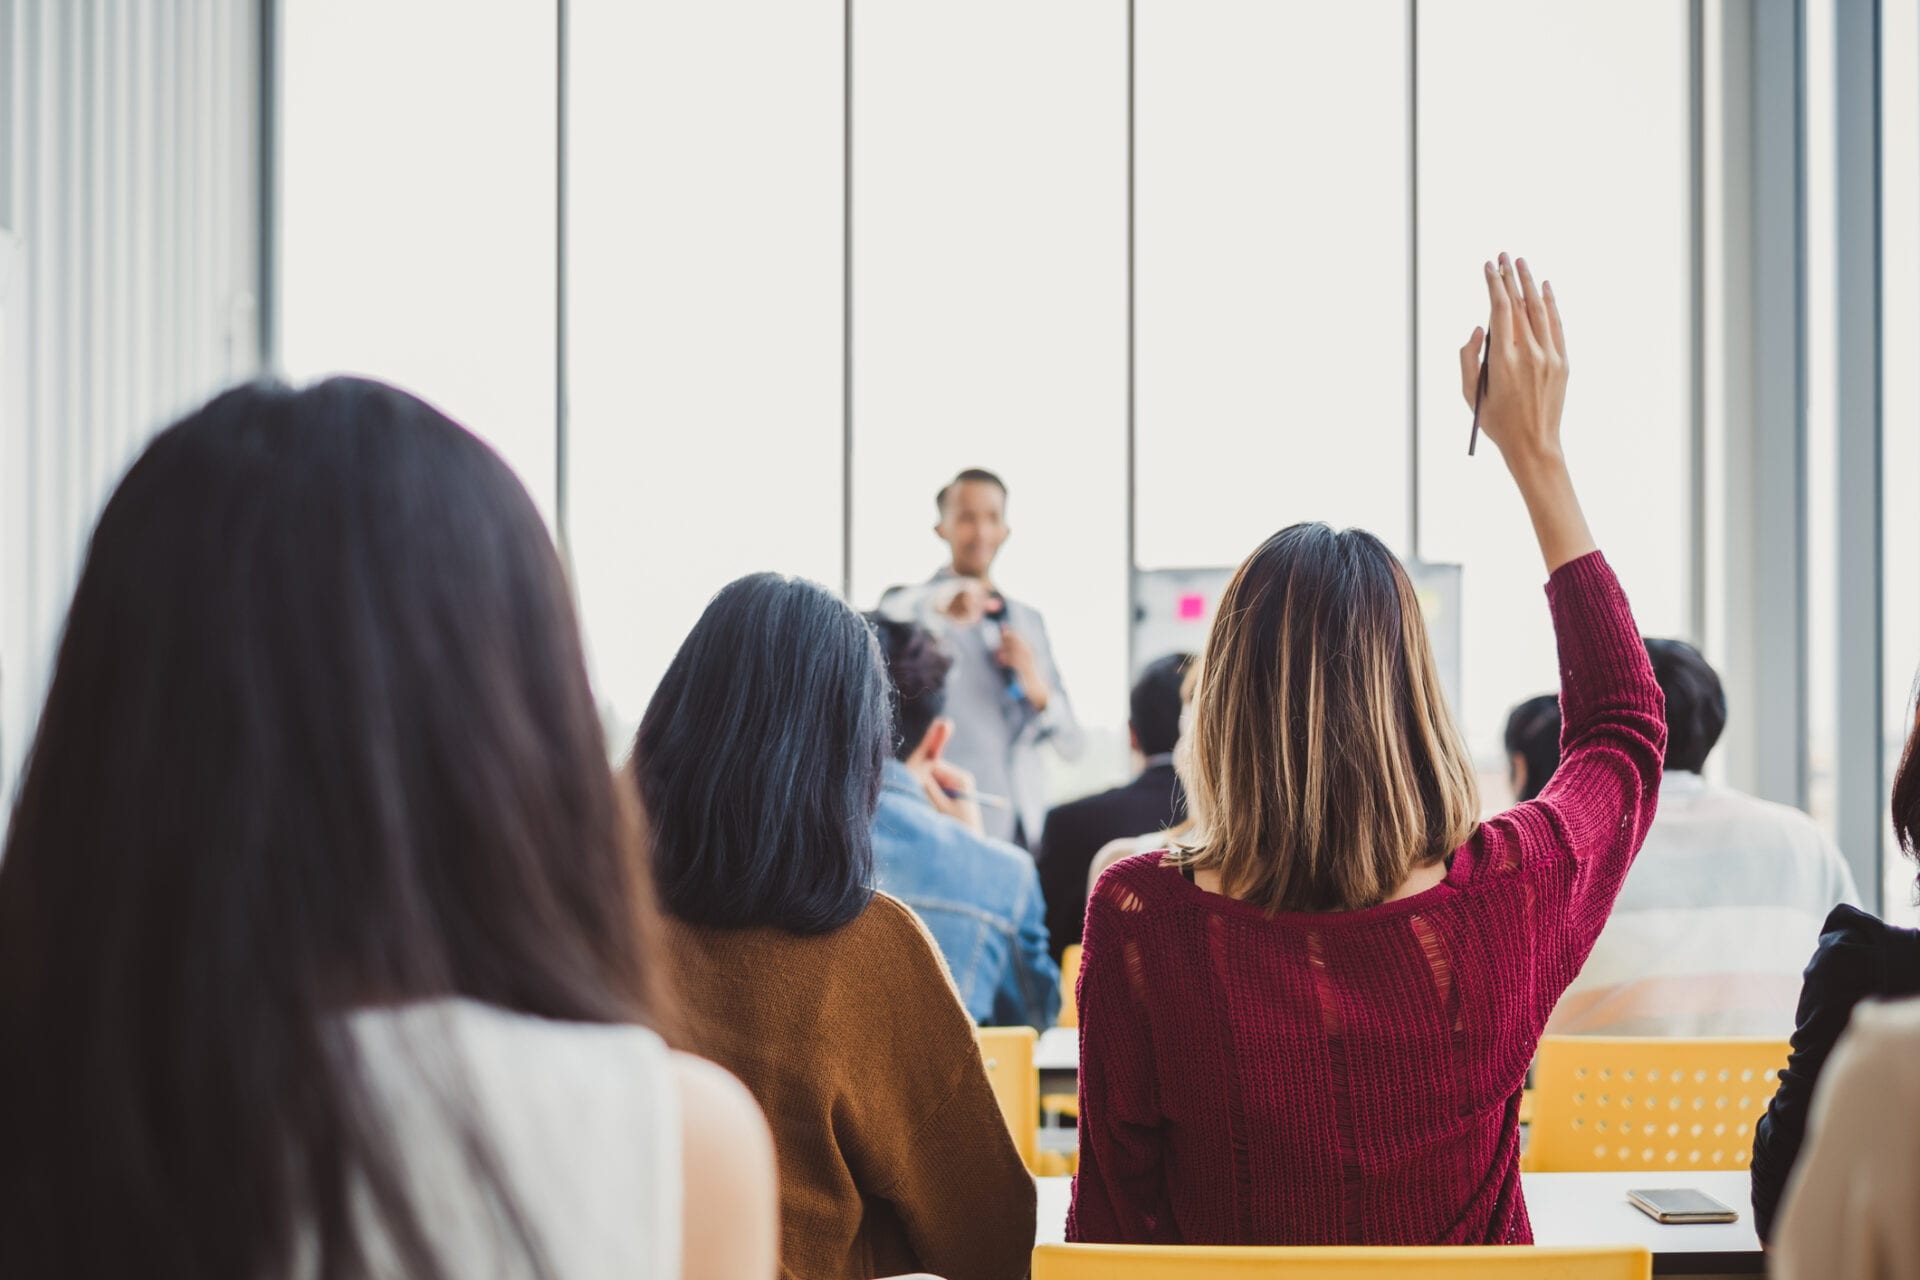 woman raising hand in training session representing concept of cost of training employees